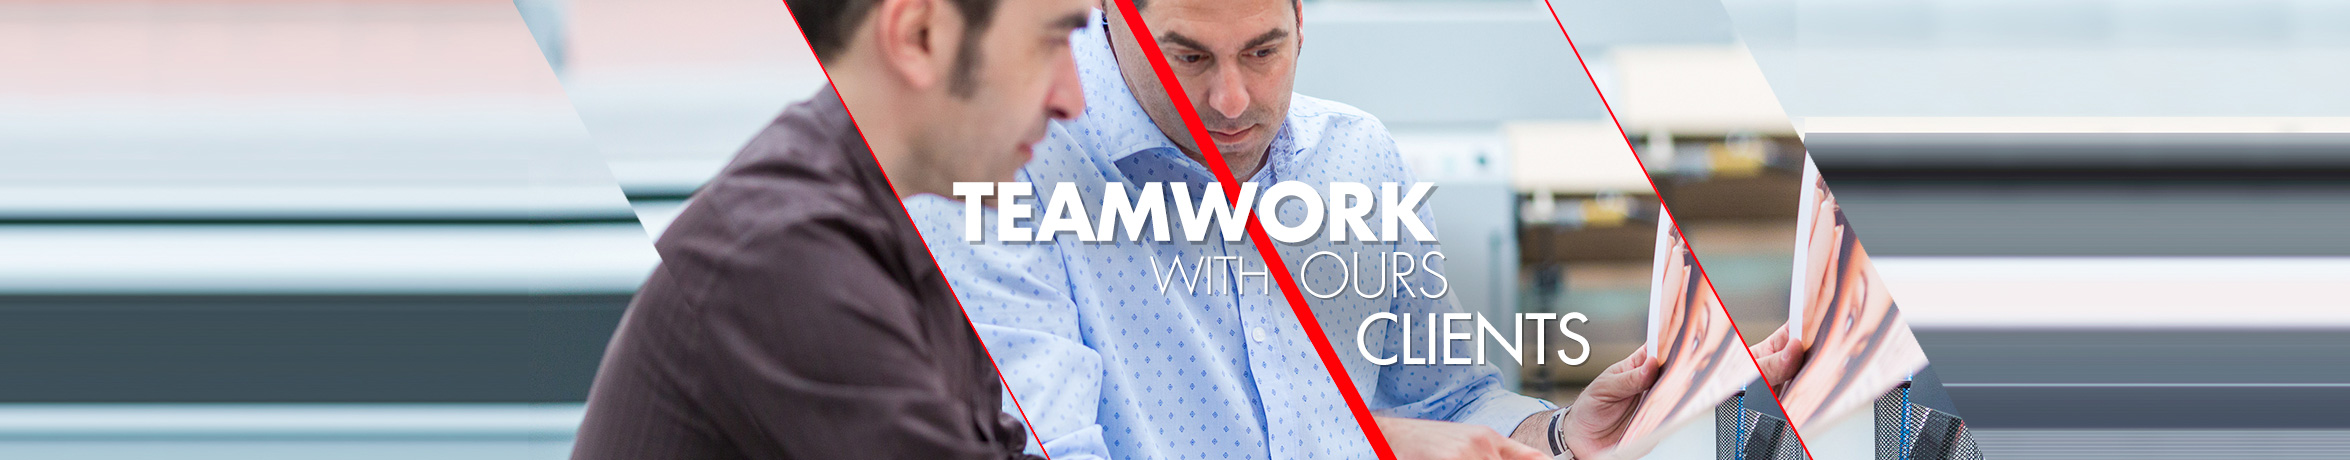 Teamwork with our clients